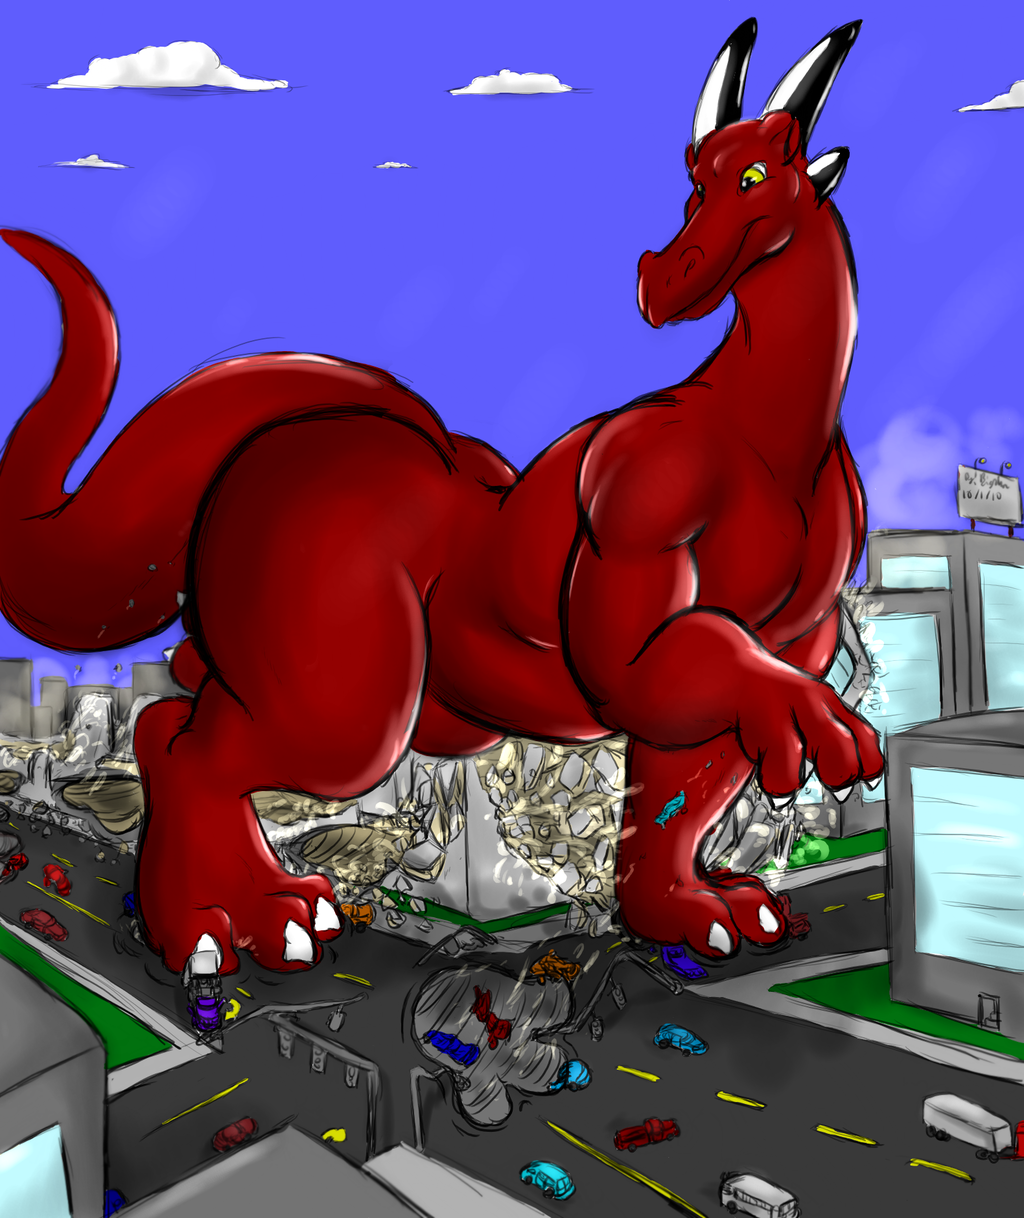 Featured image: Rex walking through town colored